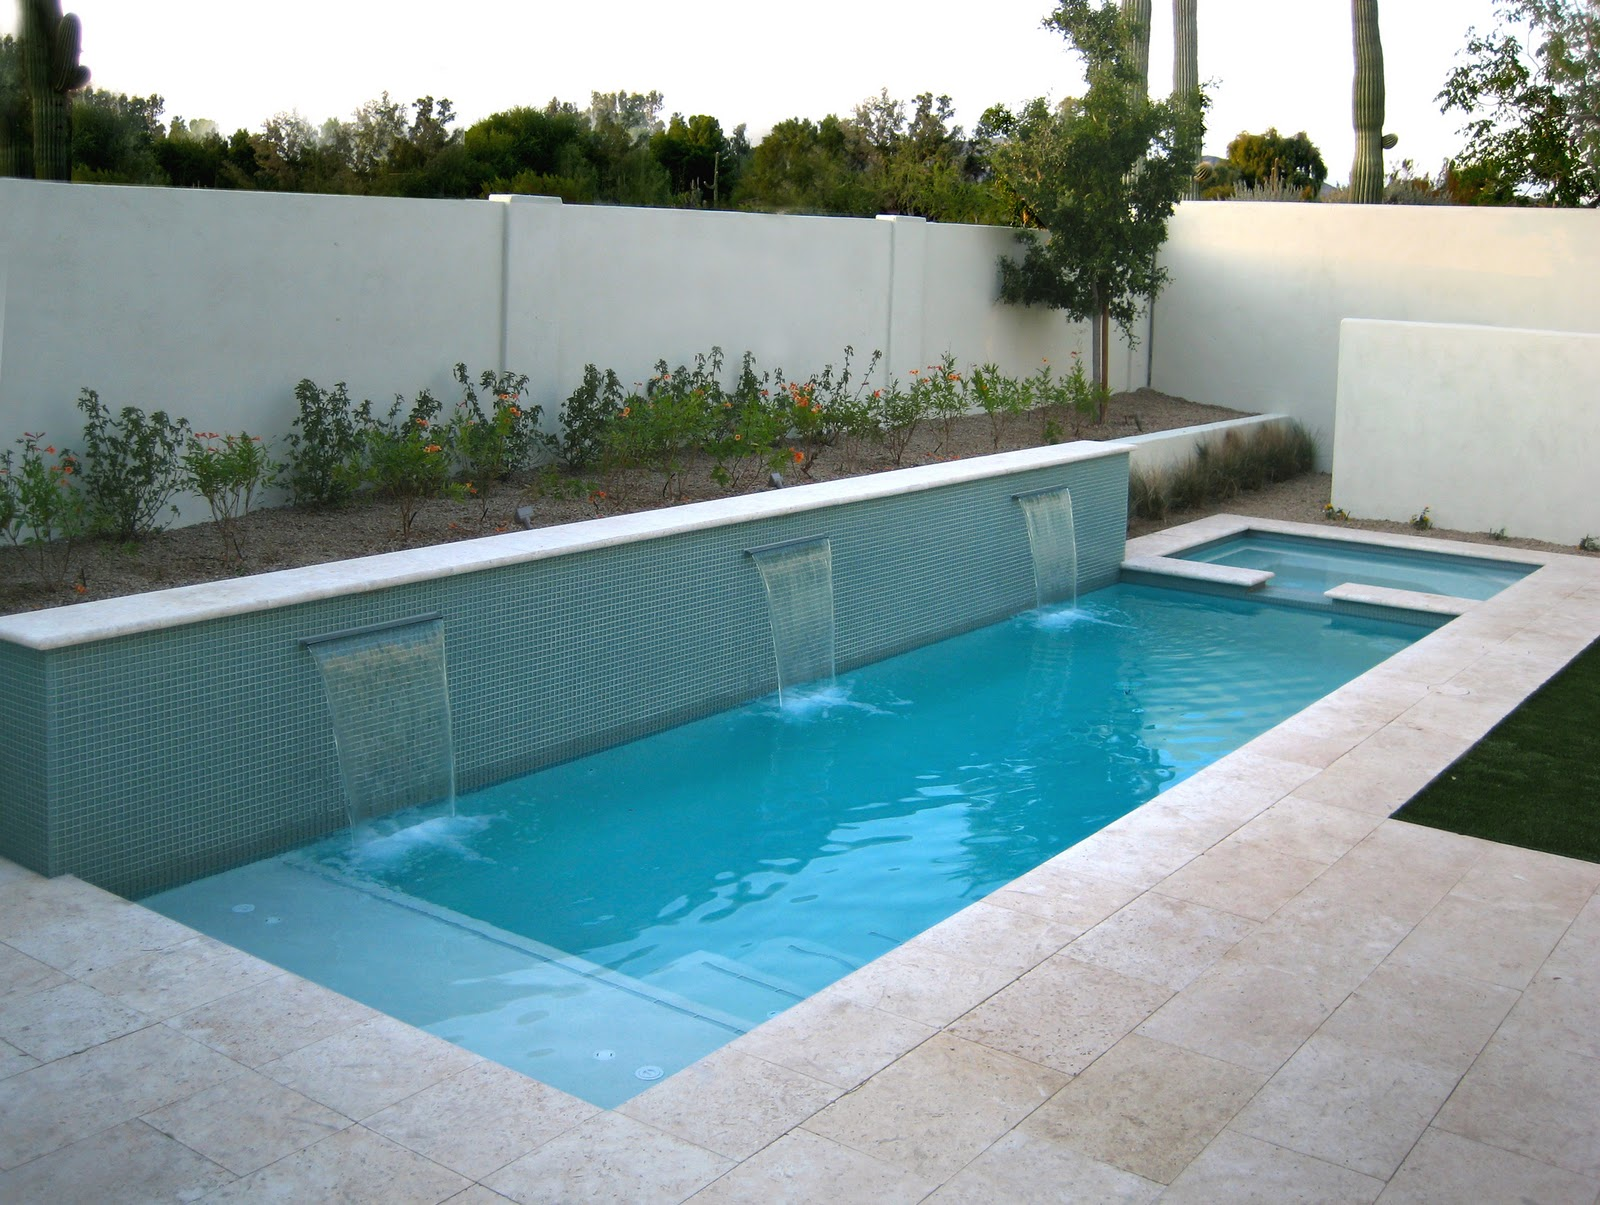 Swimming pools in small spaces alpentile glass tile for Small garden swimming pools uk